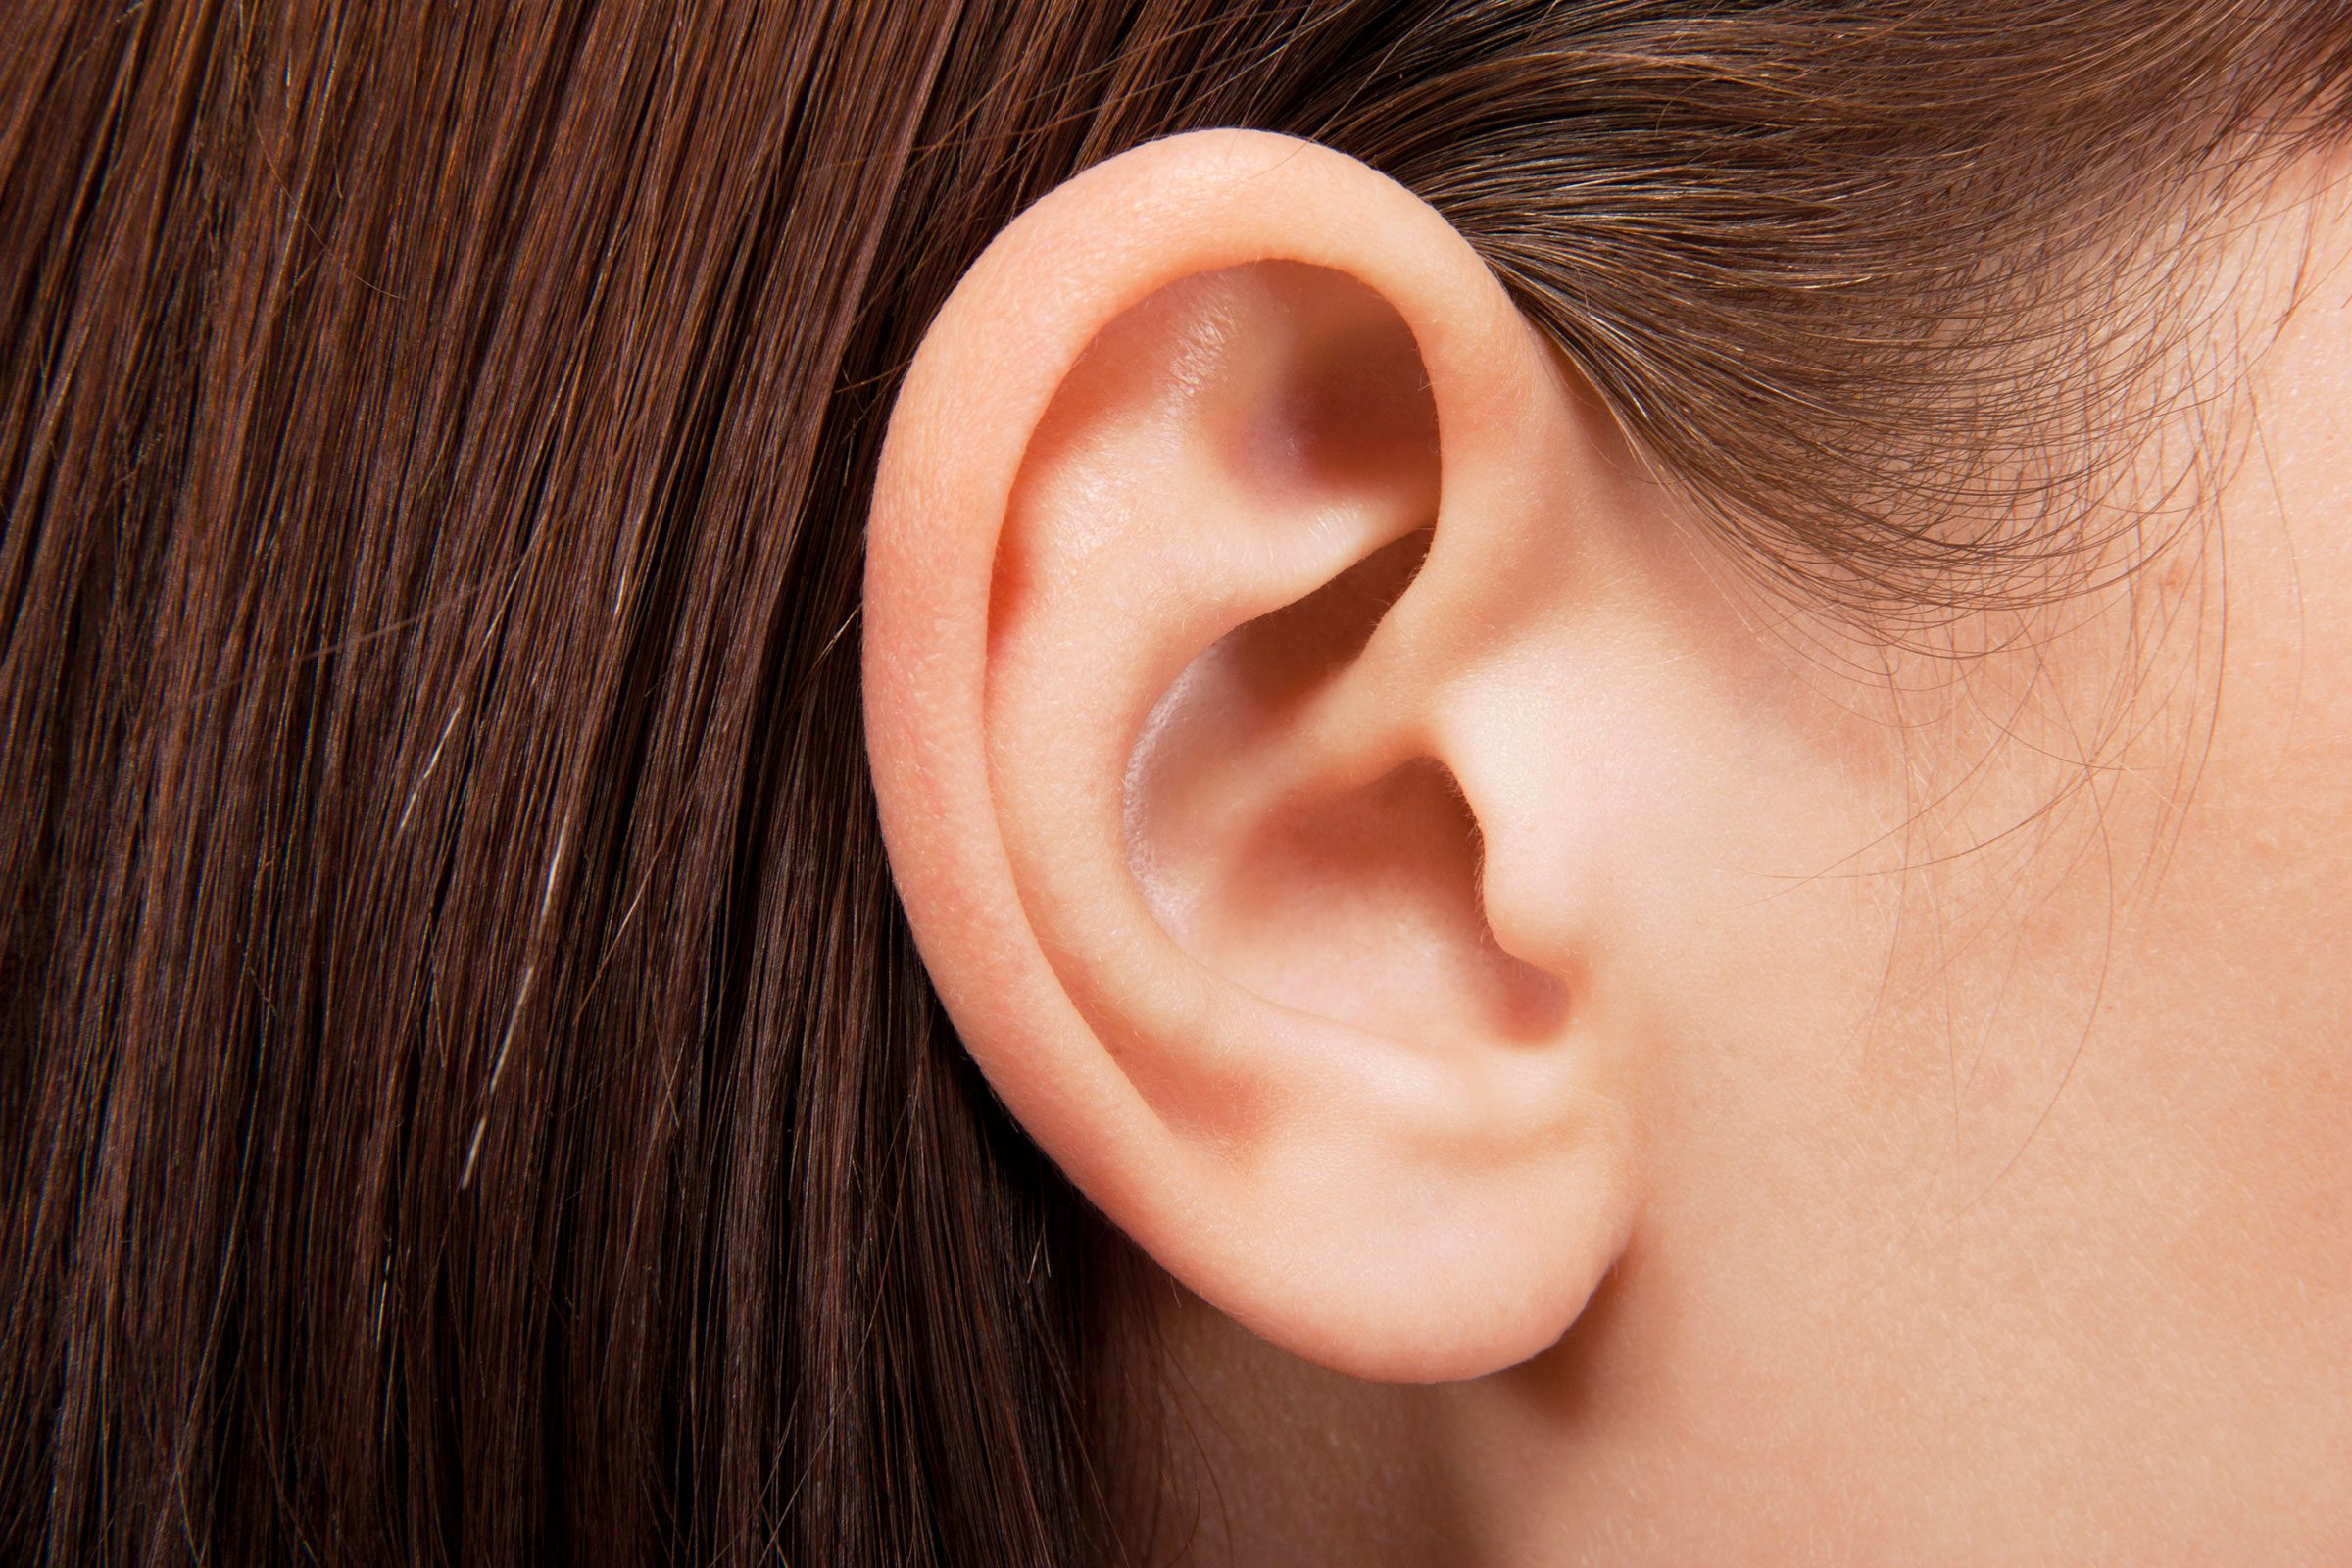 You've Got Tinnitus. Here Are 14 Effective Remedies for Relief